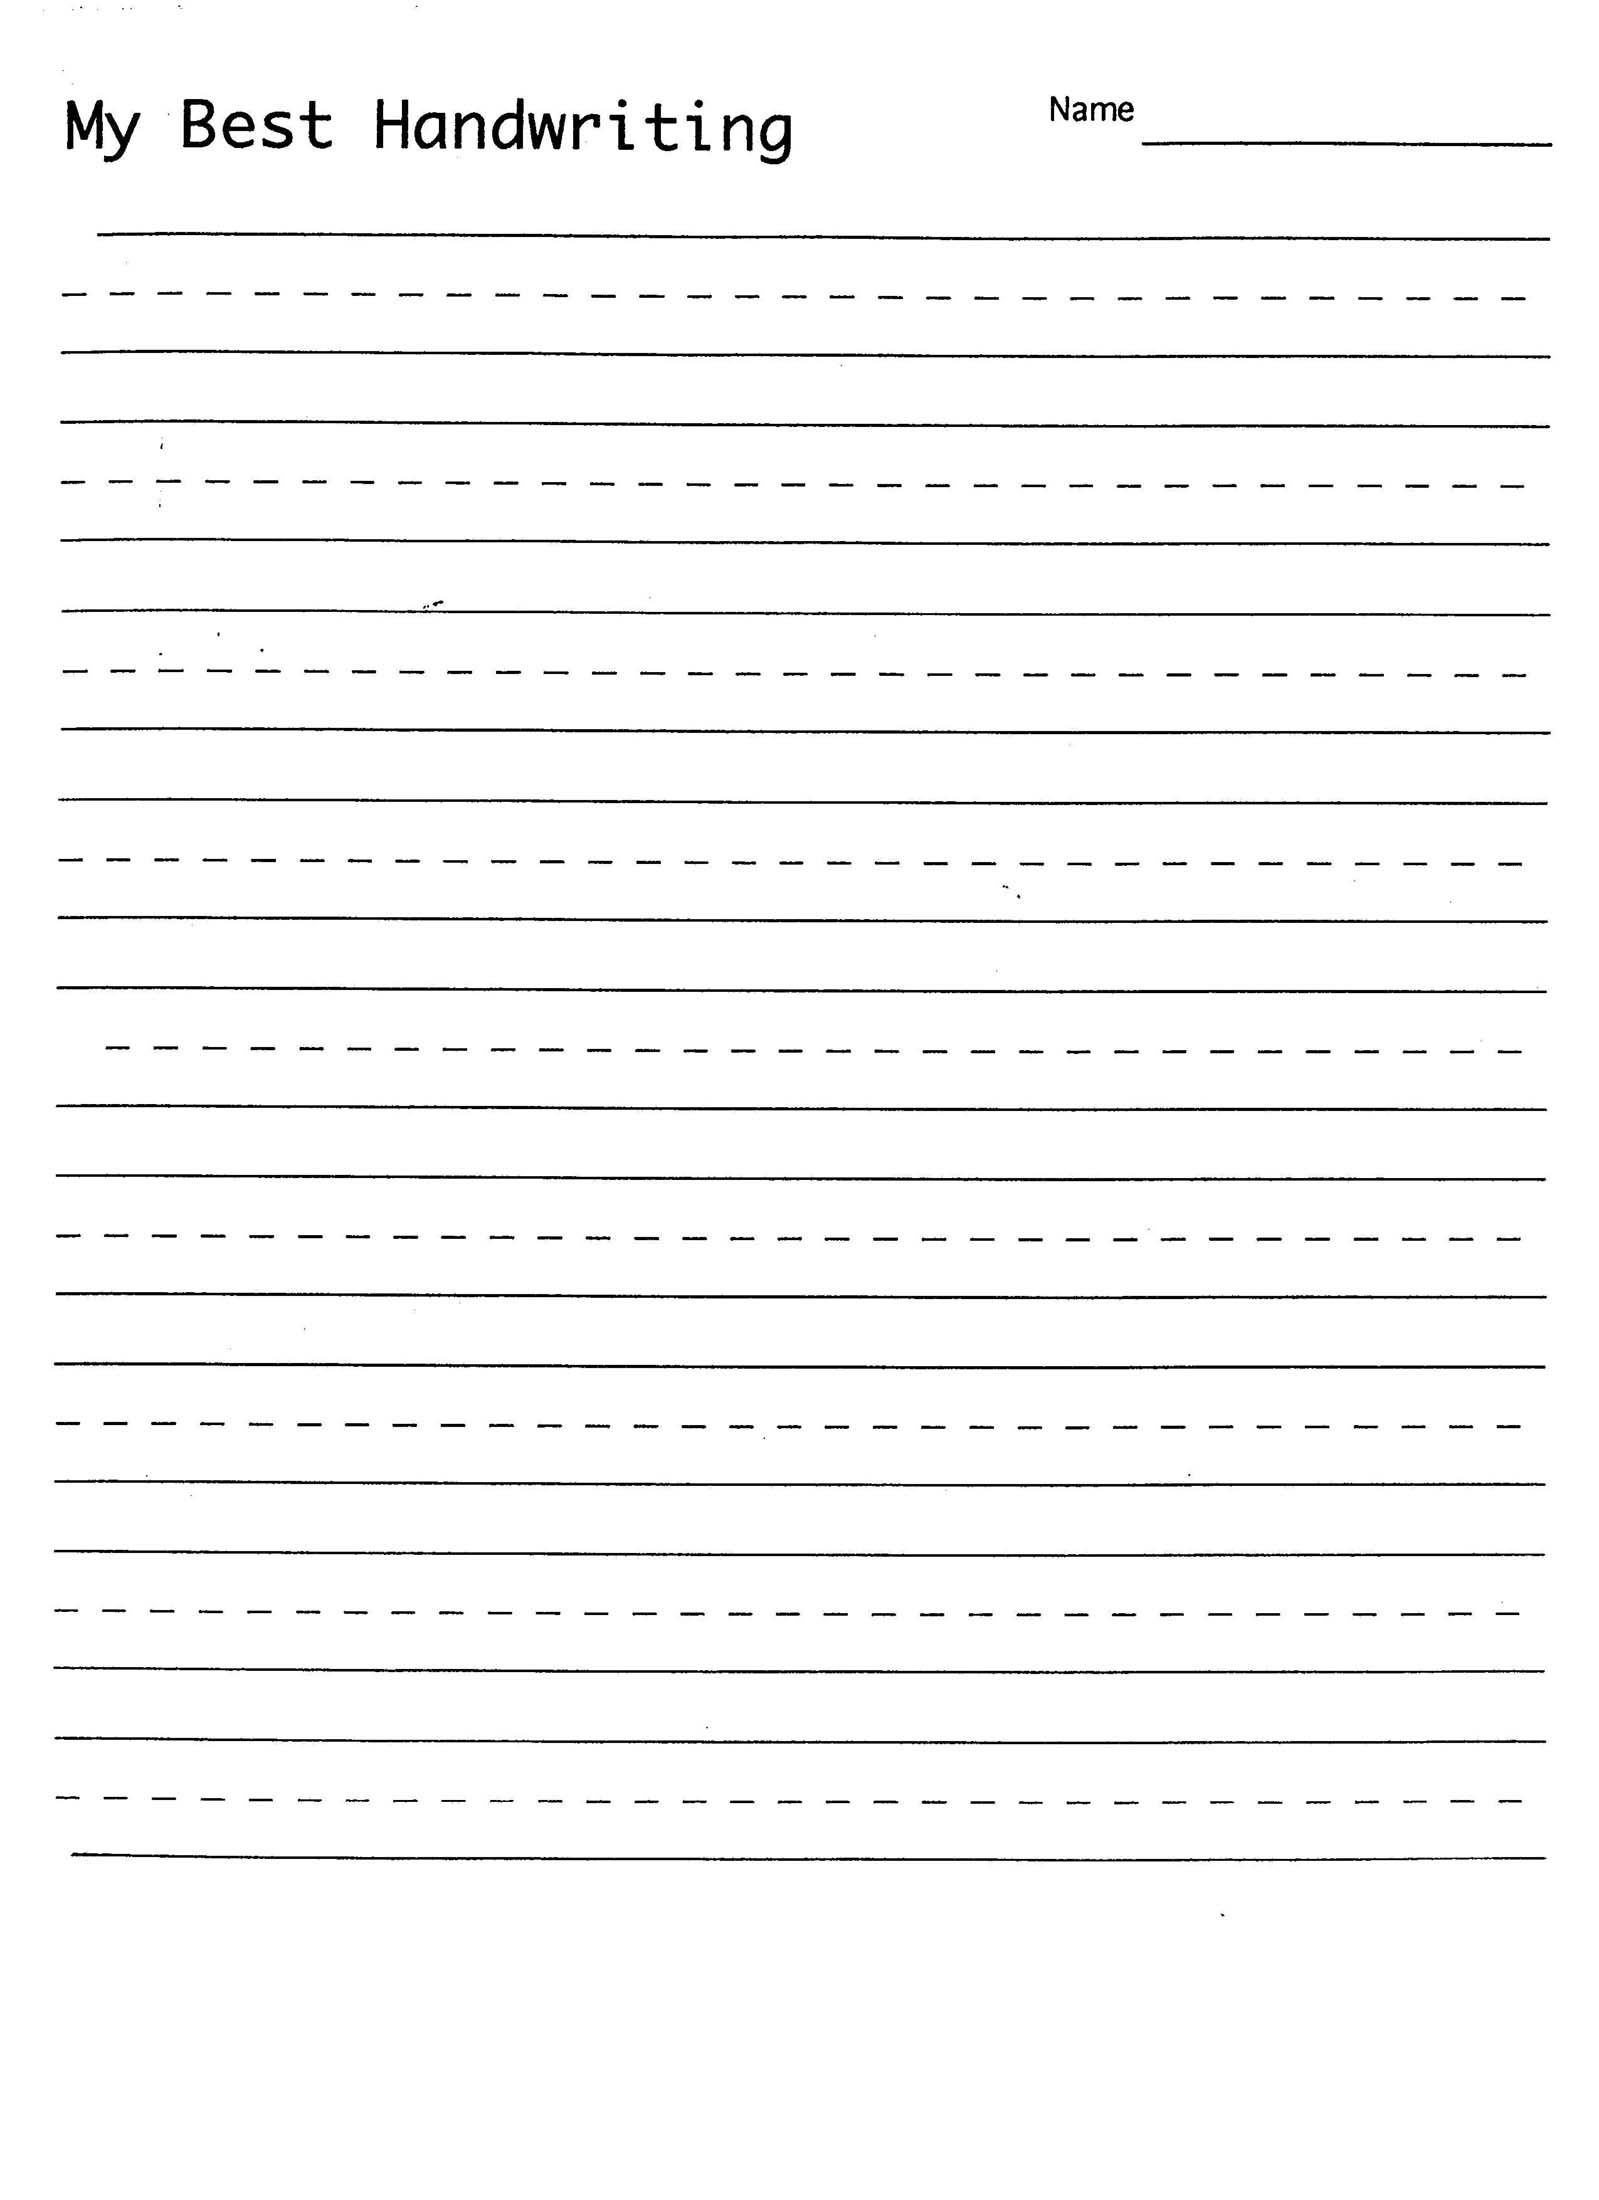 Primary Handwriting Paper